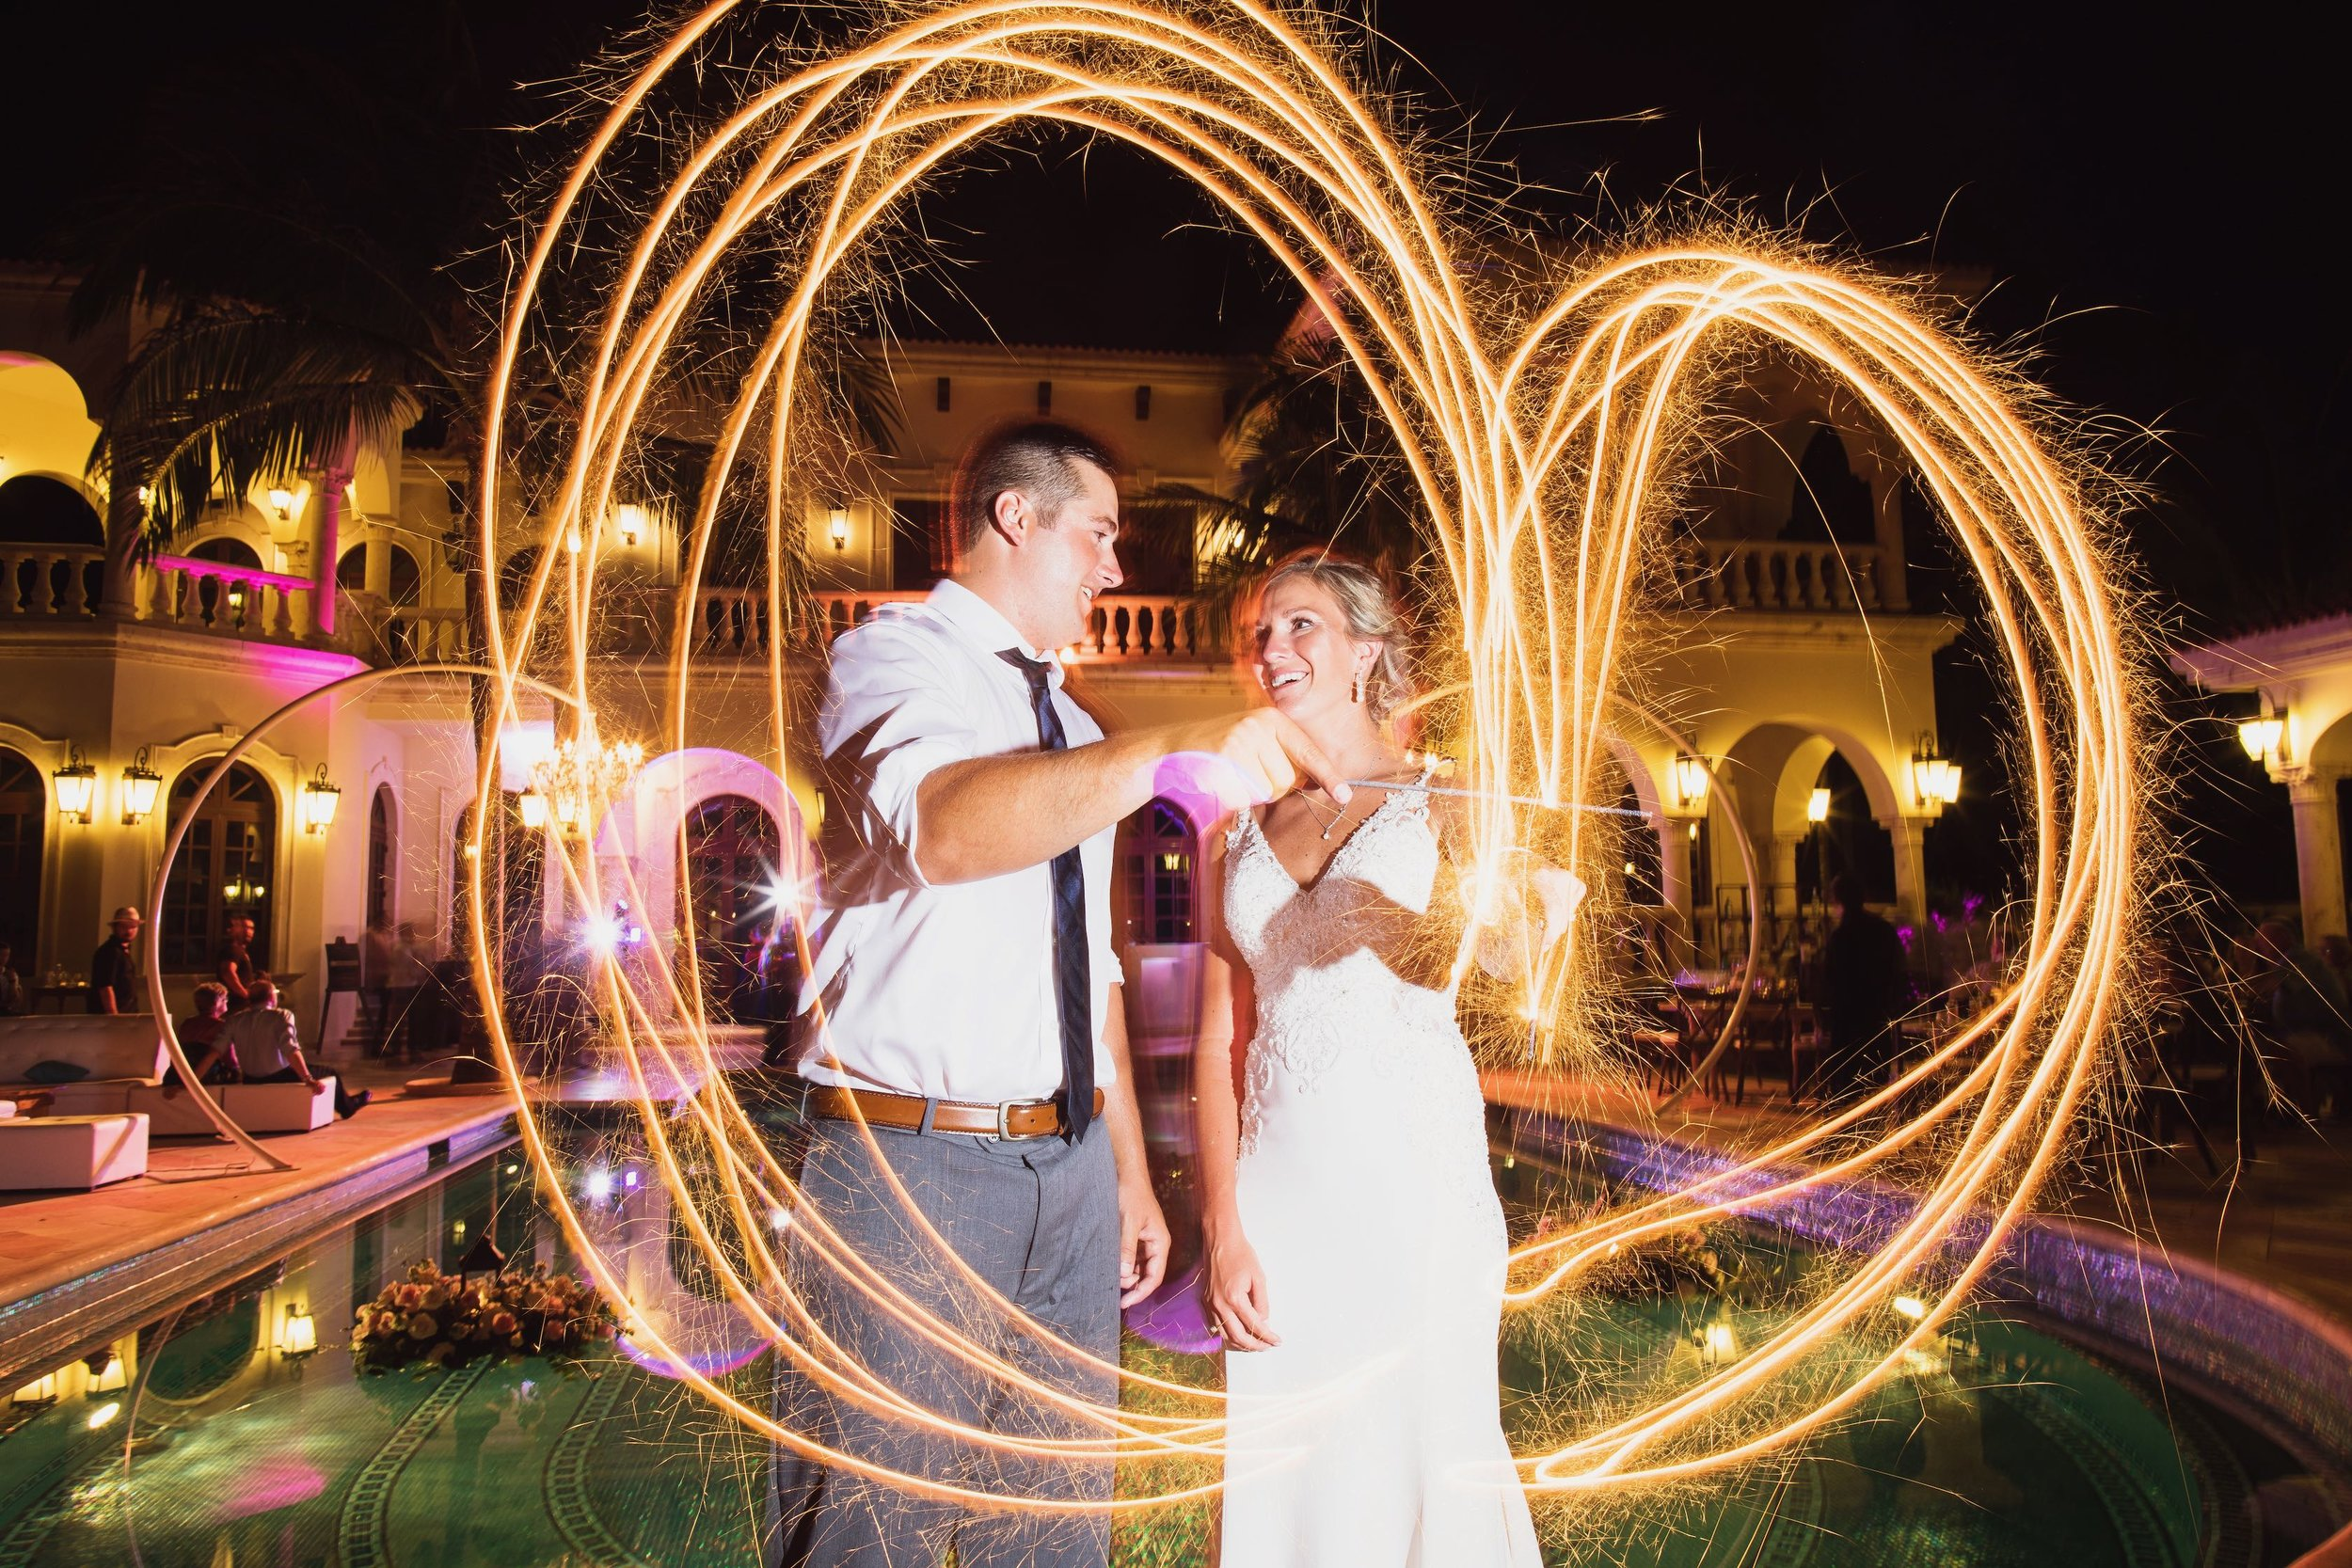 cancun-wedding-venue-villa-la-joya-984 copy-websize.jpg